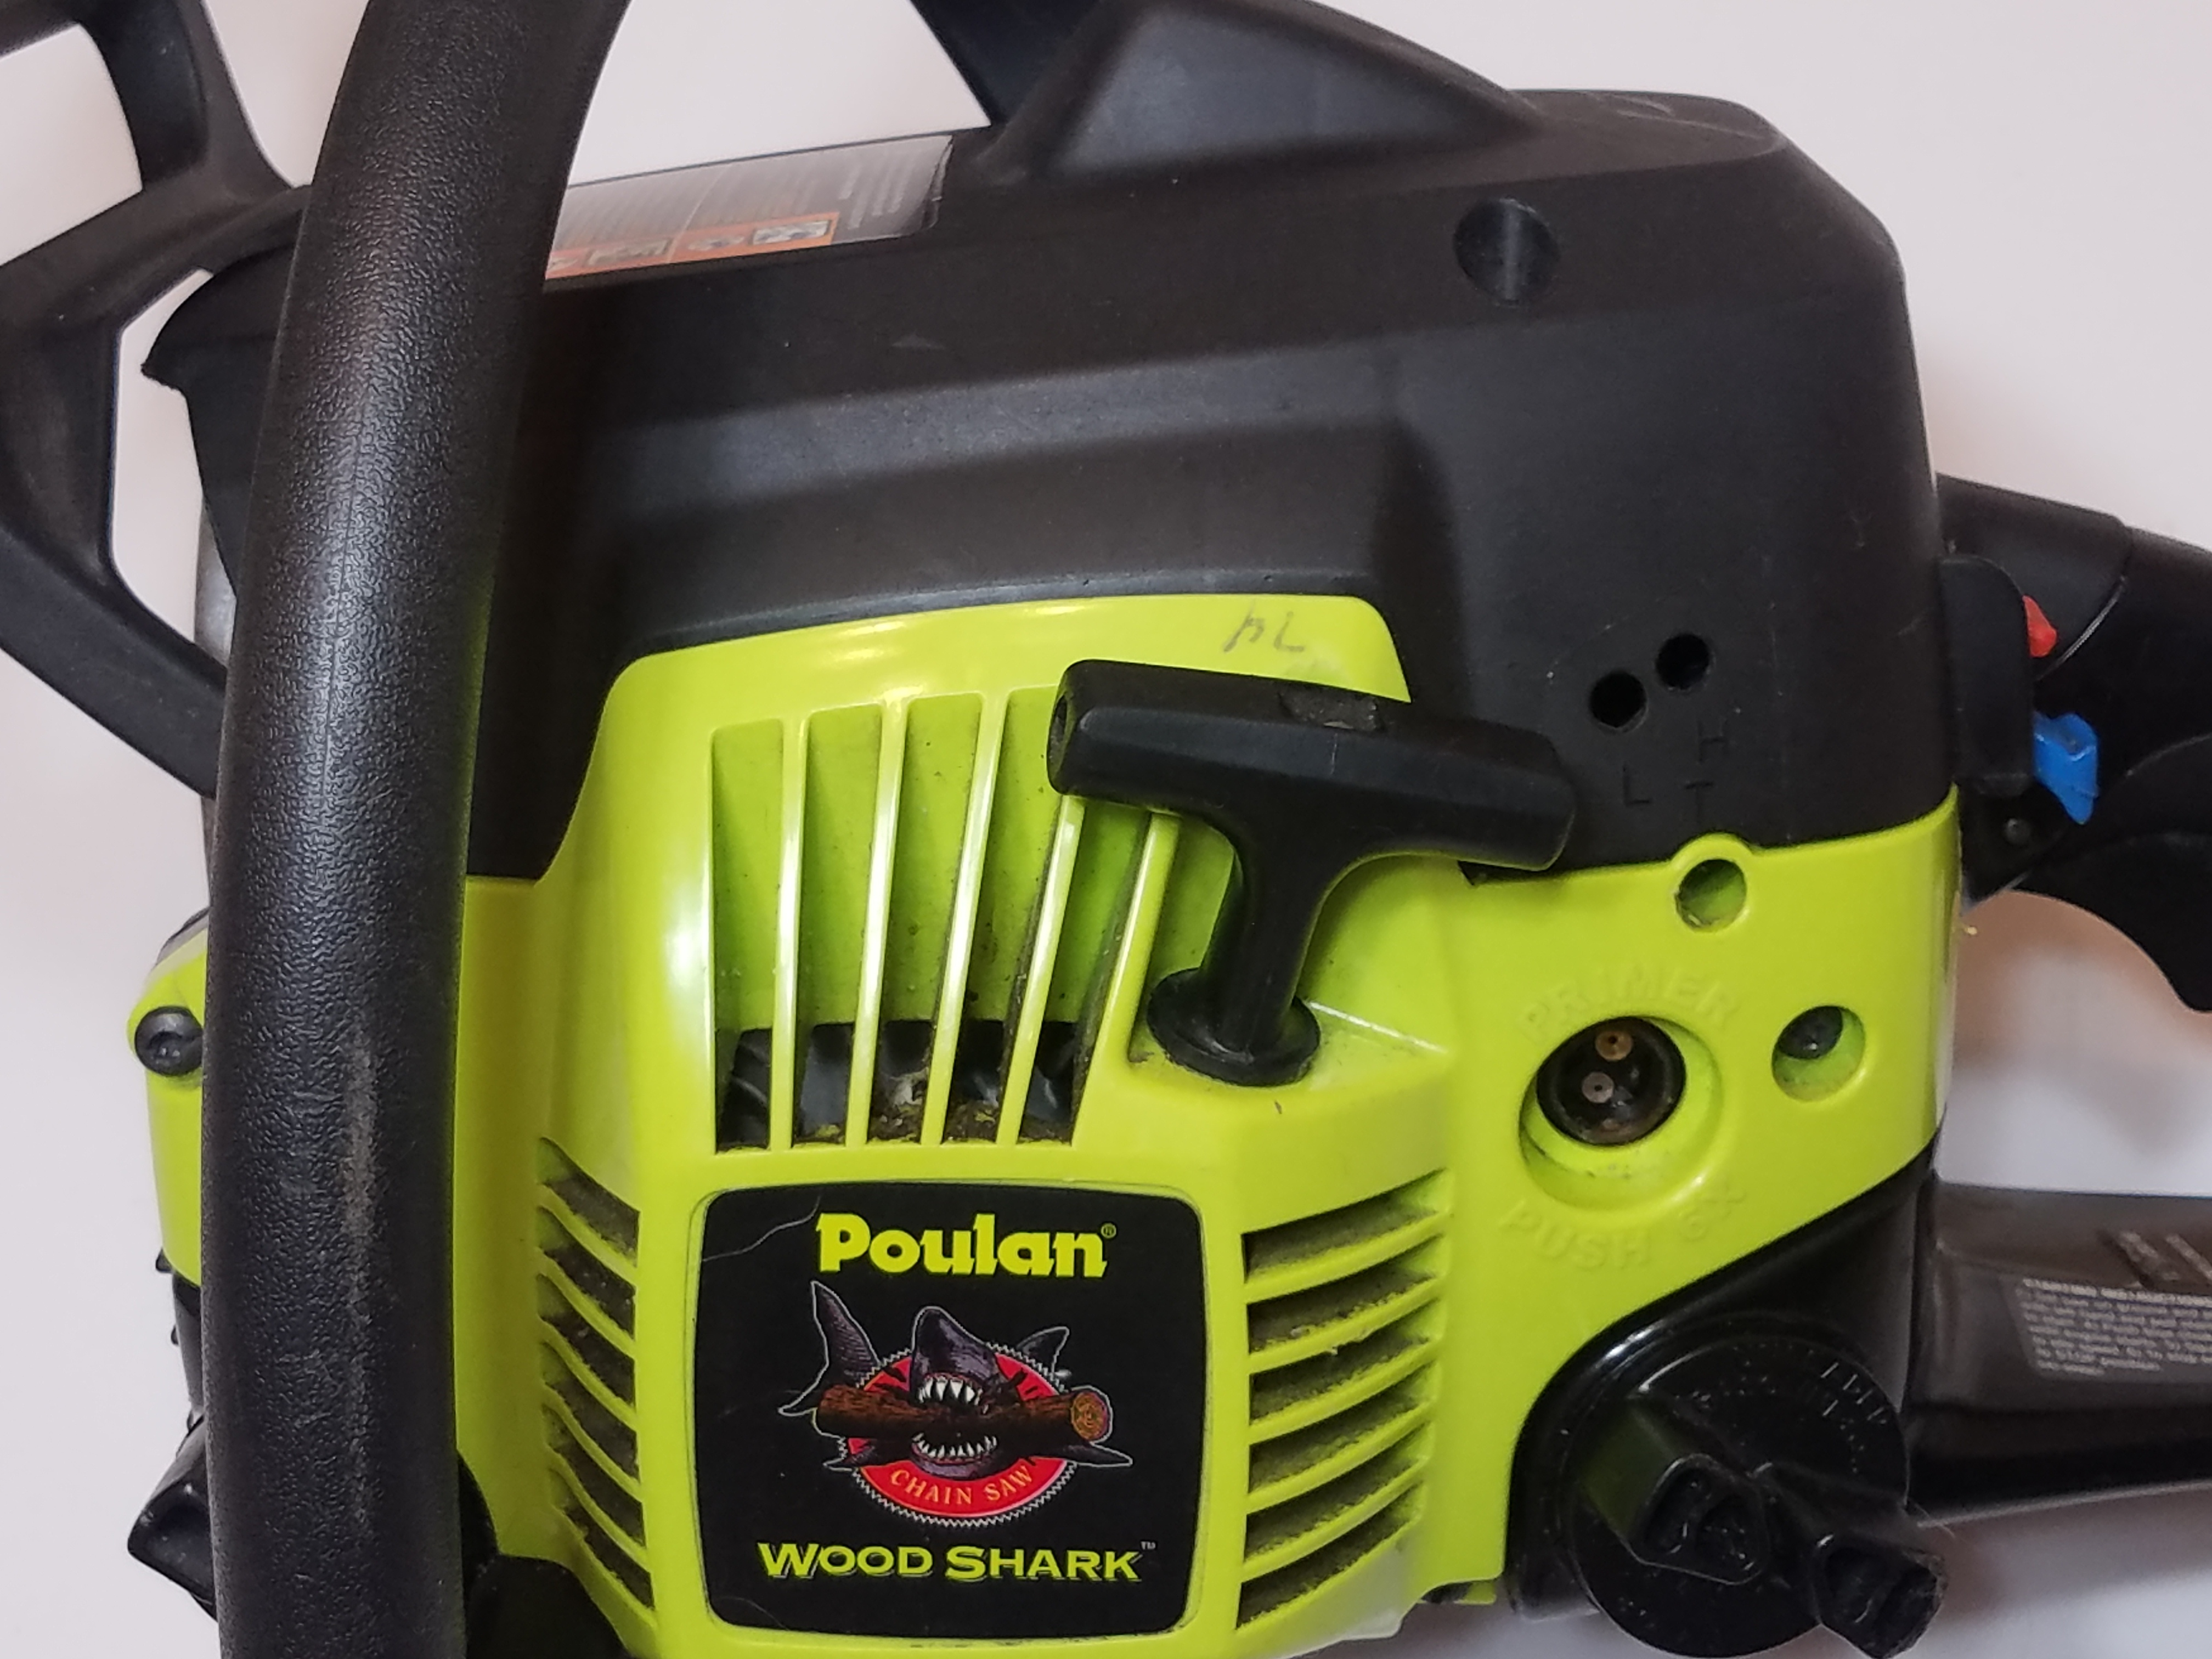 Poulan P3314 2-Cycle Chainsaw: Replace Primer Bulb, Fuel Lines, and Filters  - iFixit Repair Guide